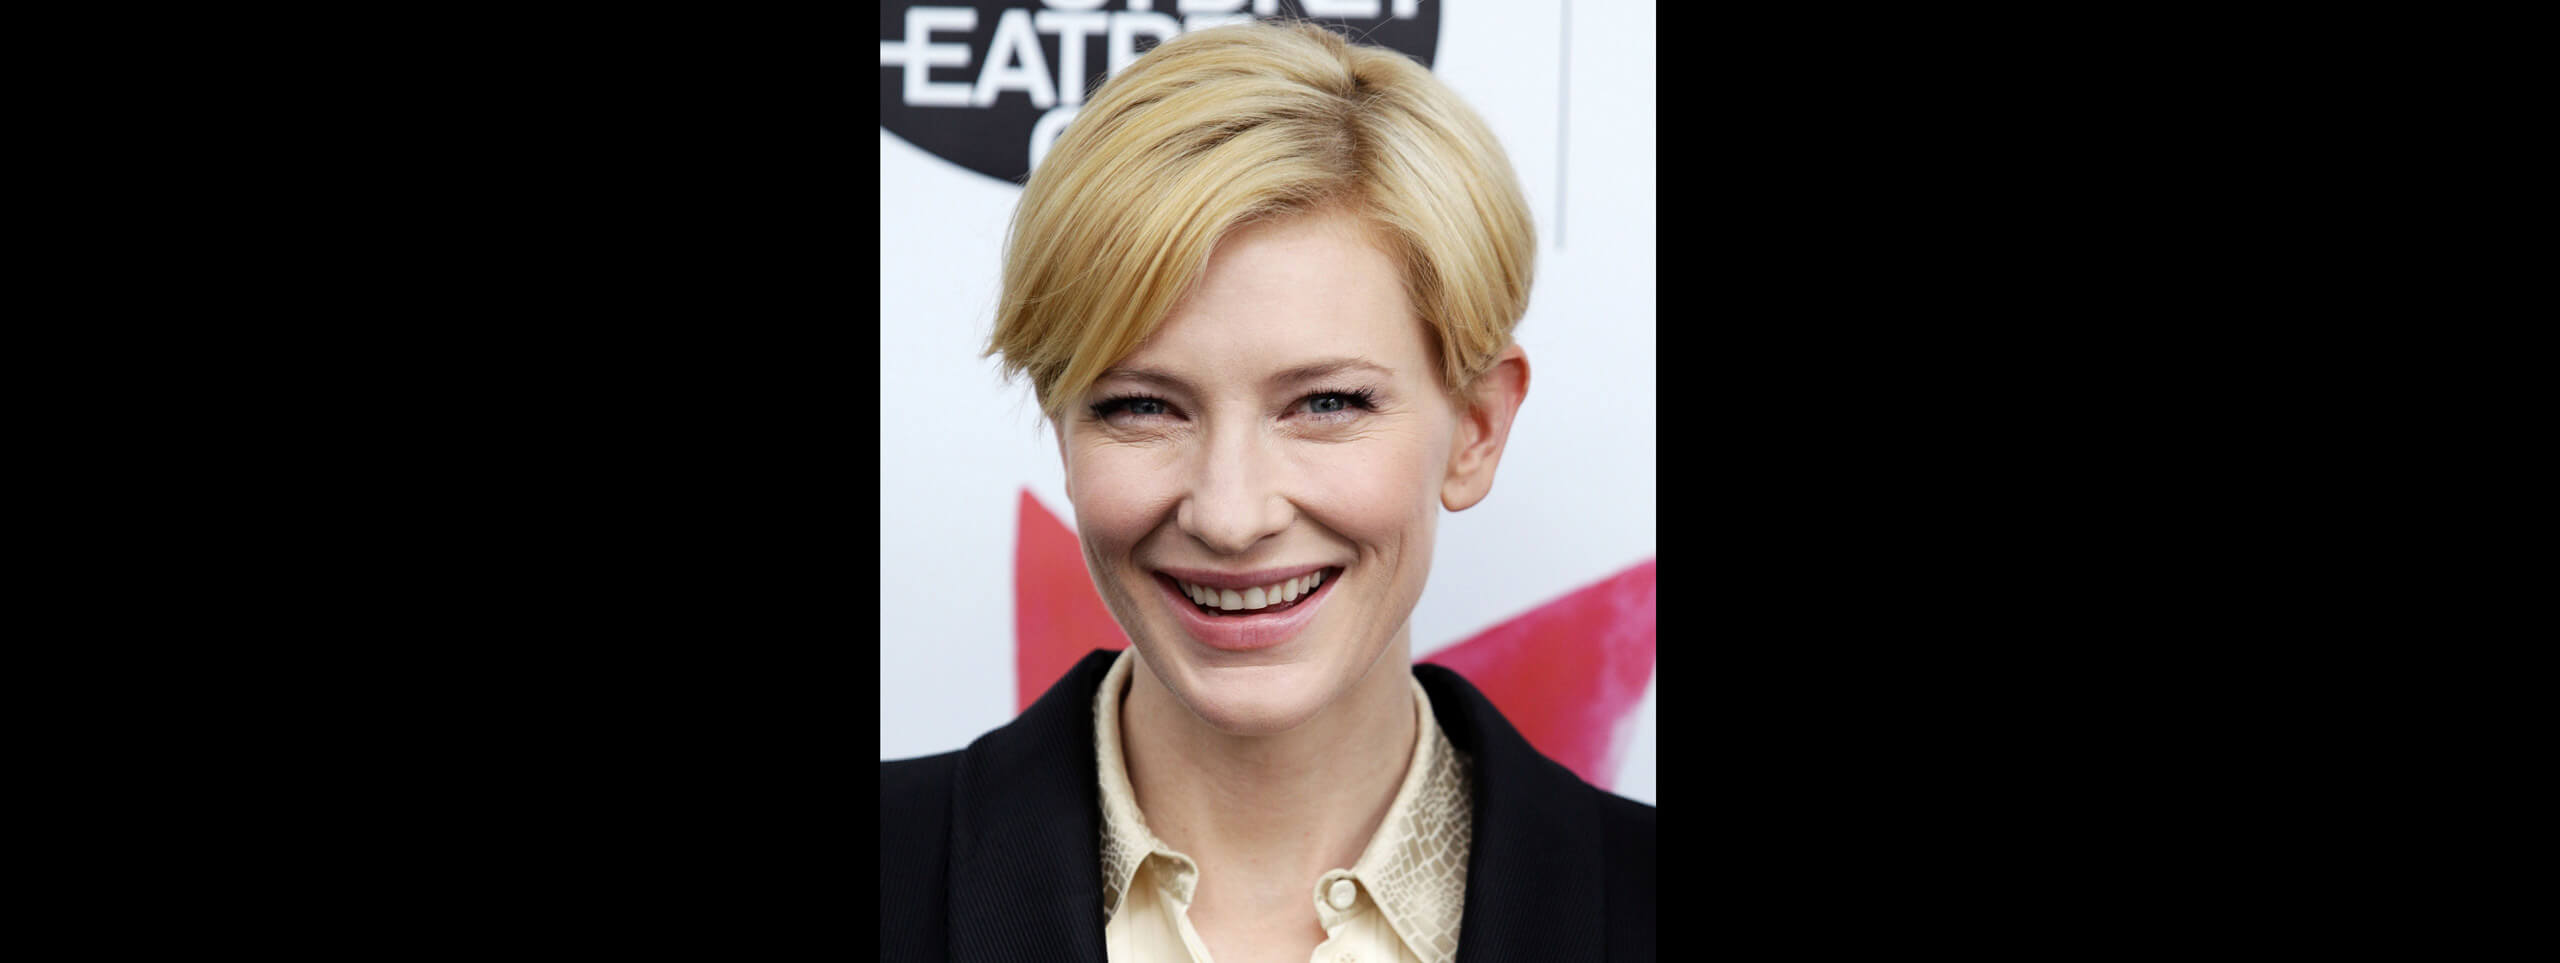 short-hair-hairstyle-cate-blanchett